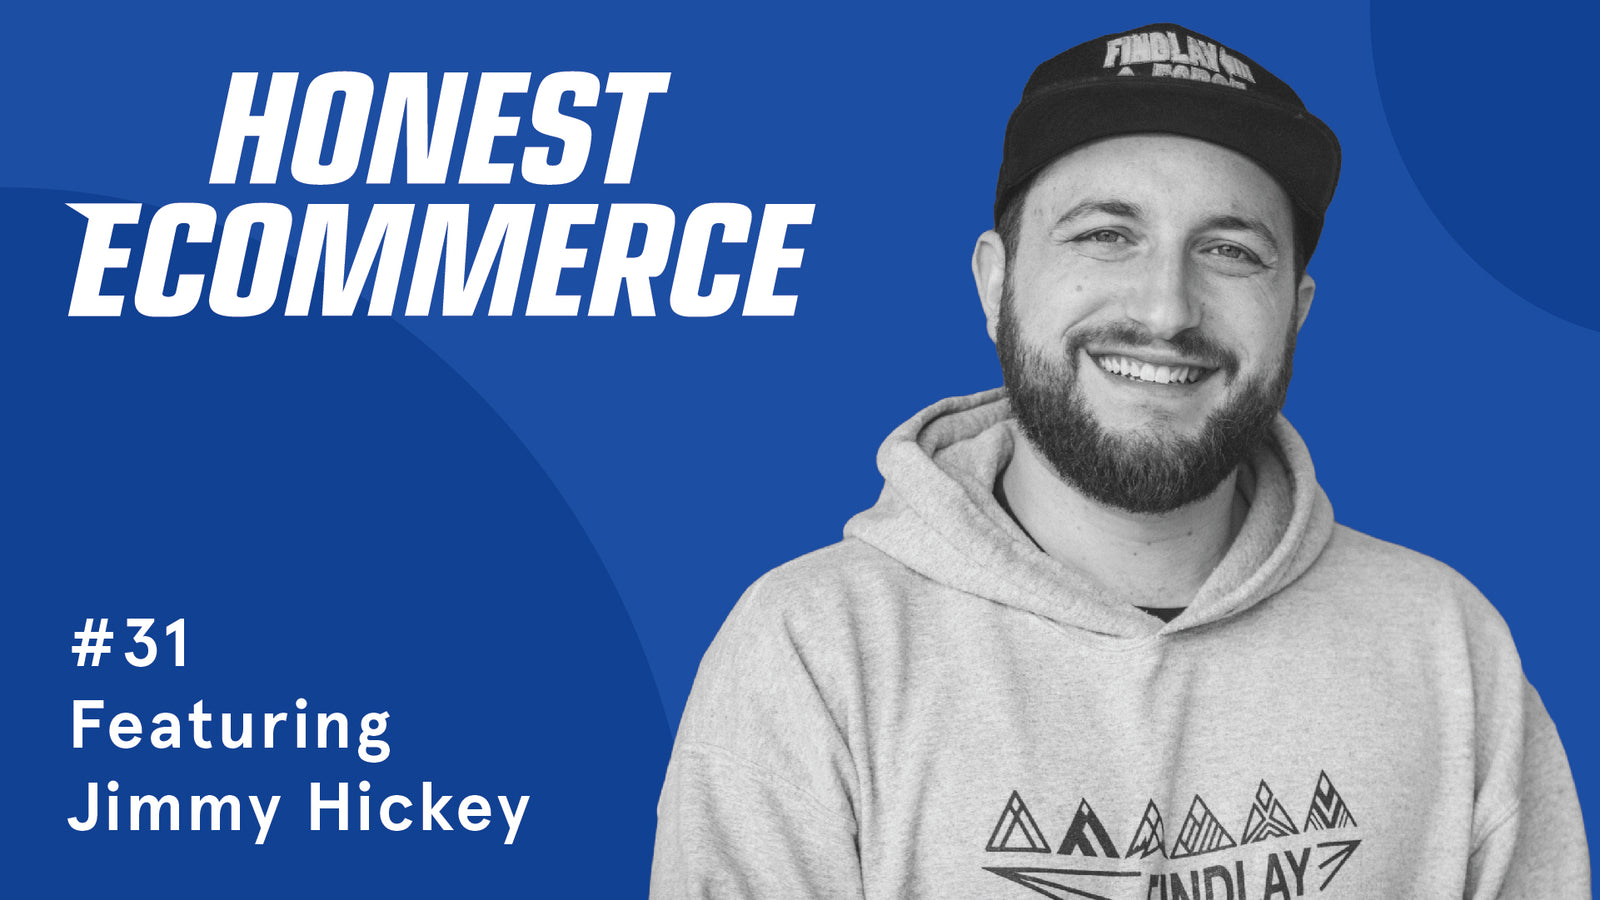 Jimmy Hickey | Honest eCommerce